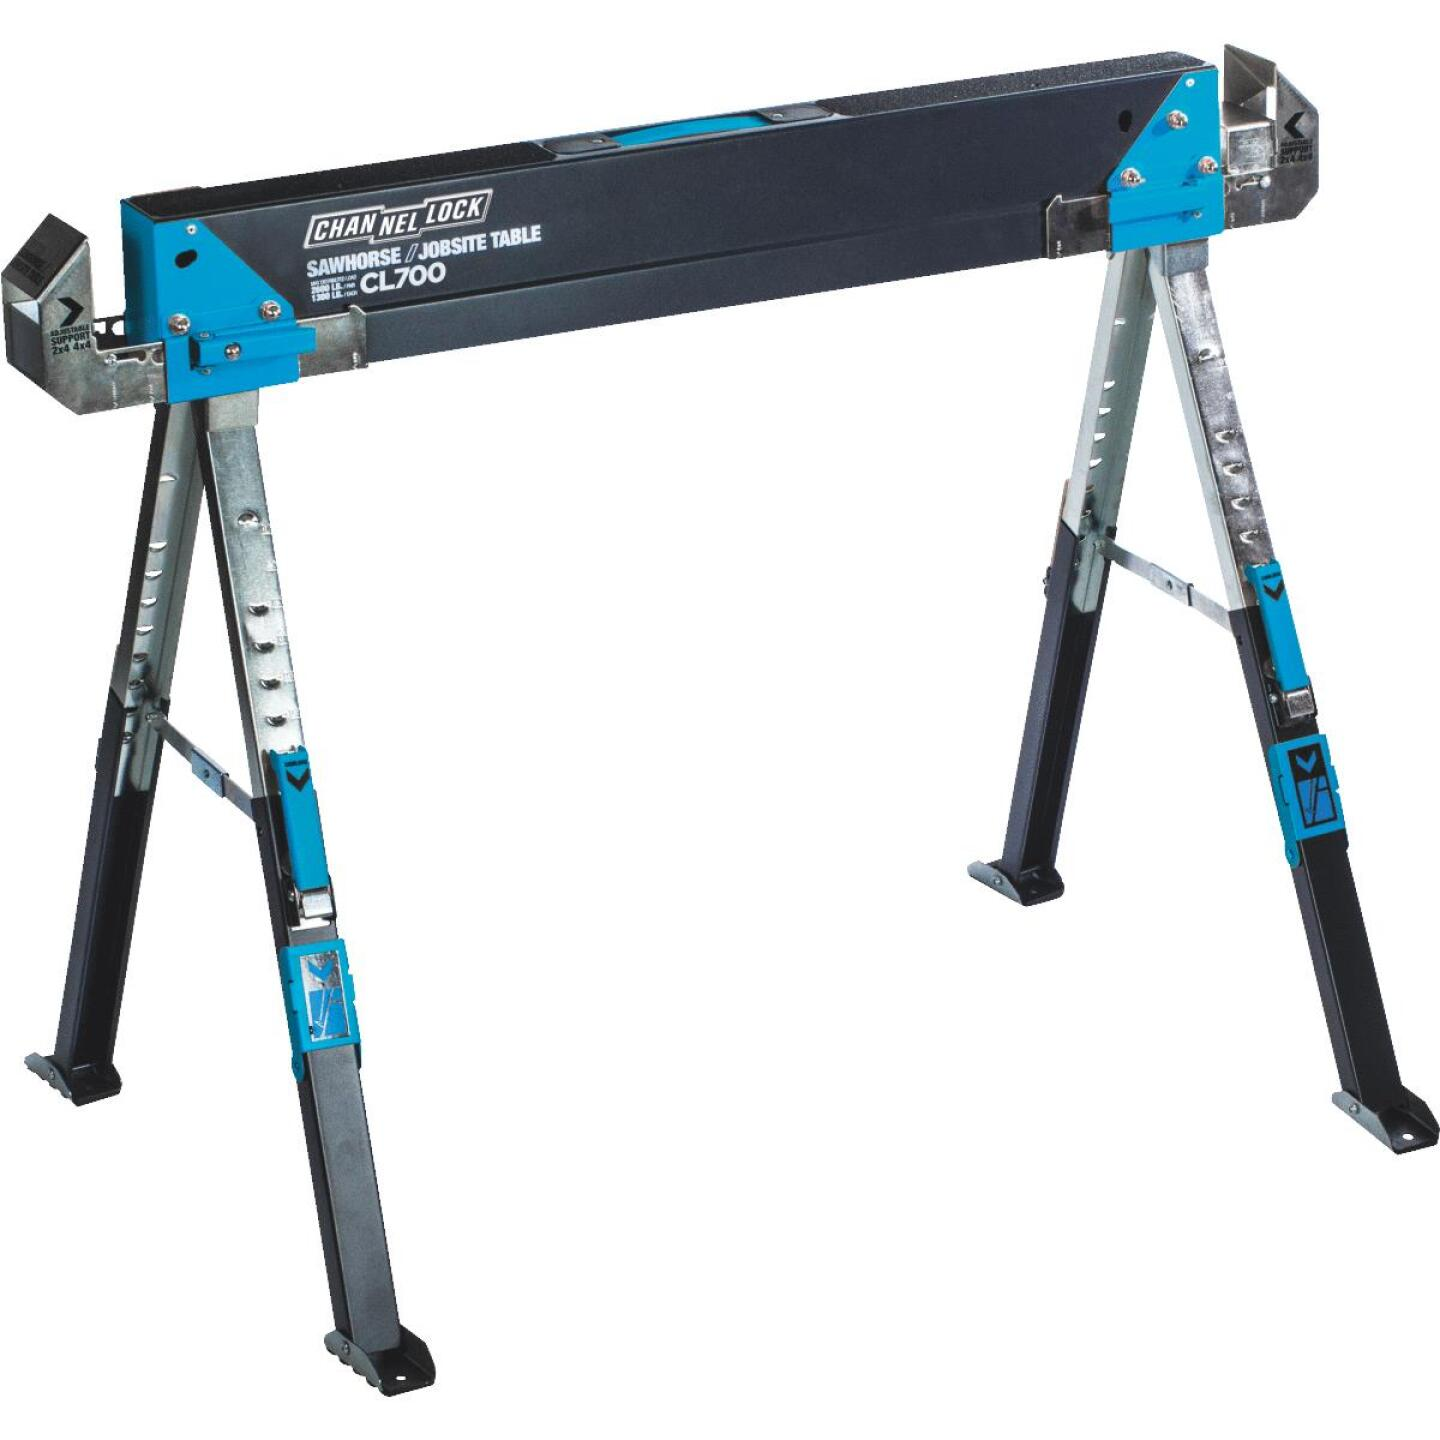 Channellock 39-1/4 to 45-3/4 In. Long Steel Adjustable Sawhorse Jobsite Table, 1300 Lb. Capacity Image 1